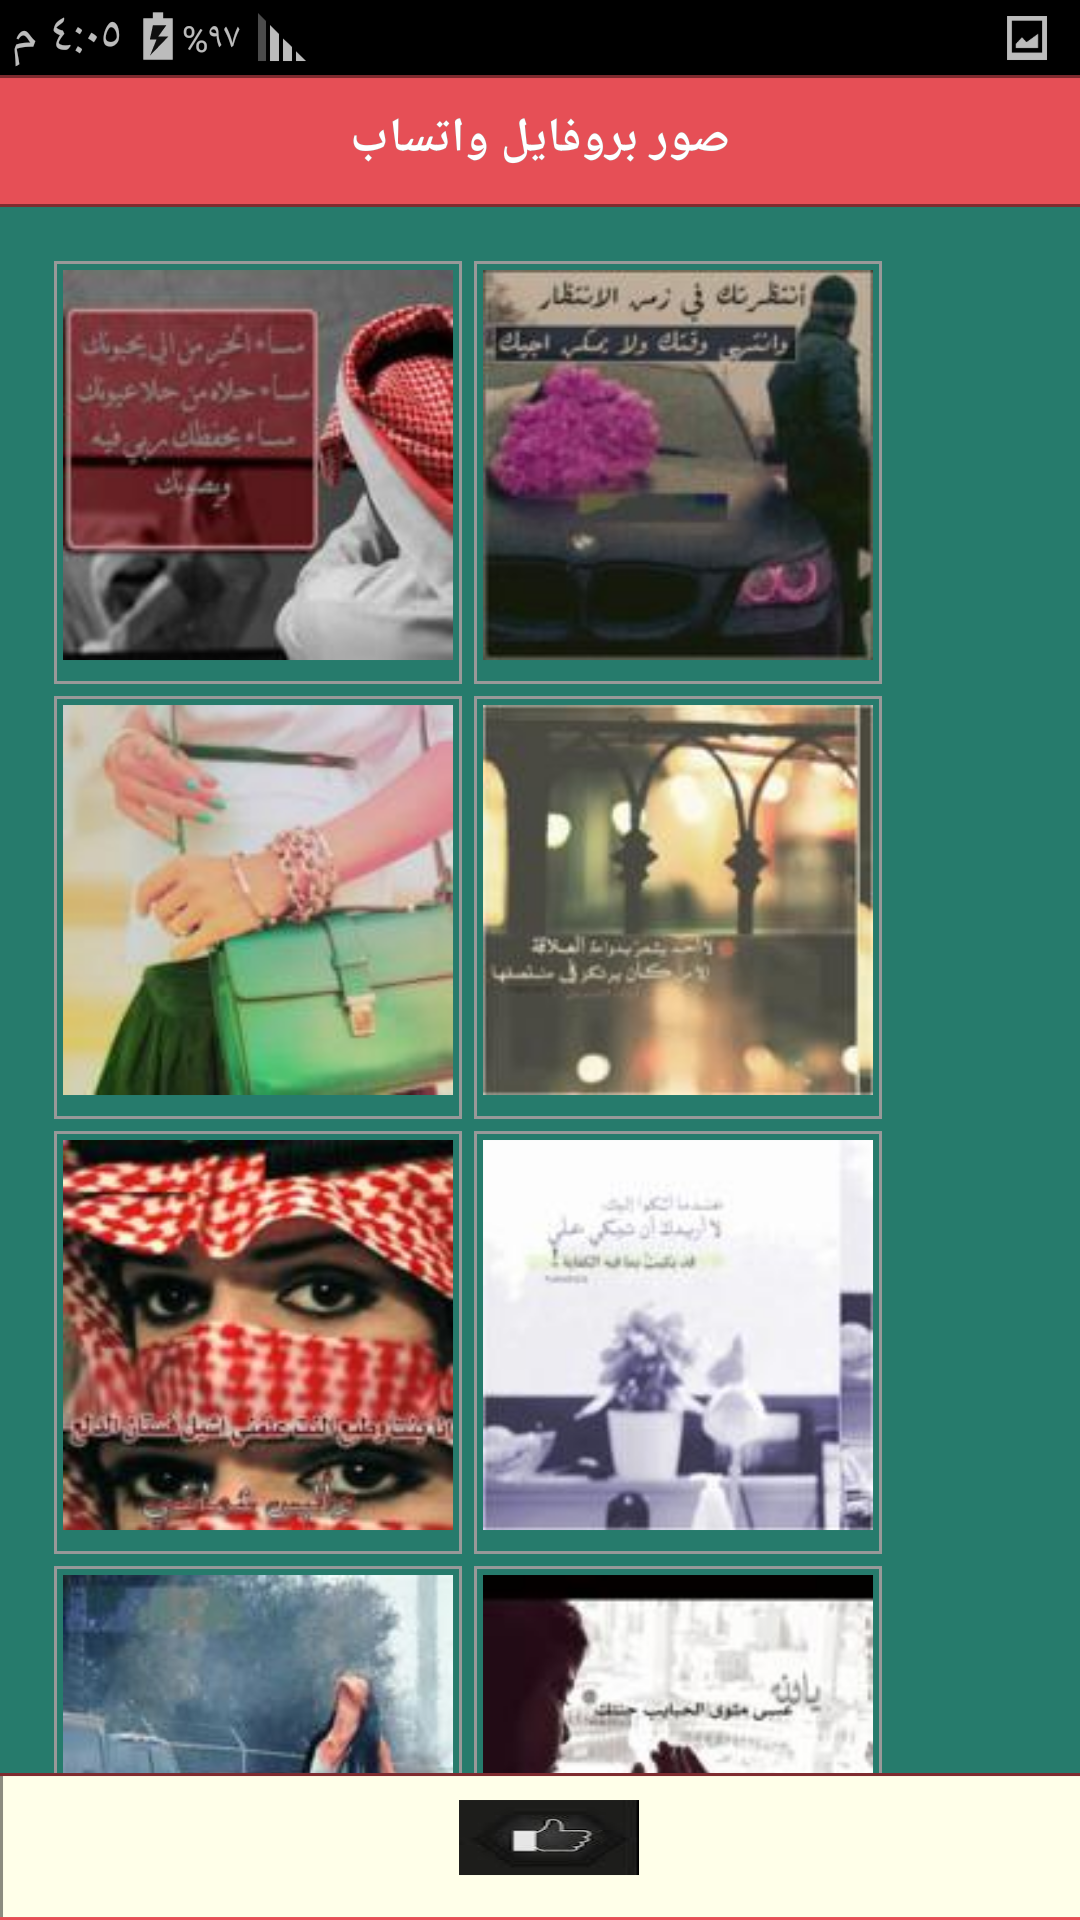 Amazon.com: صور بروفايل واتساب: Appstore for Android